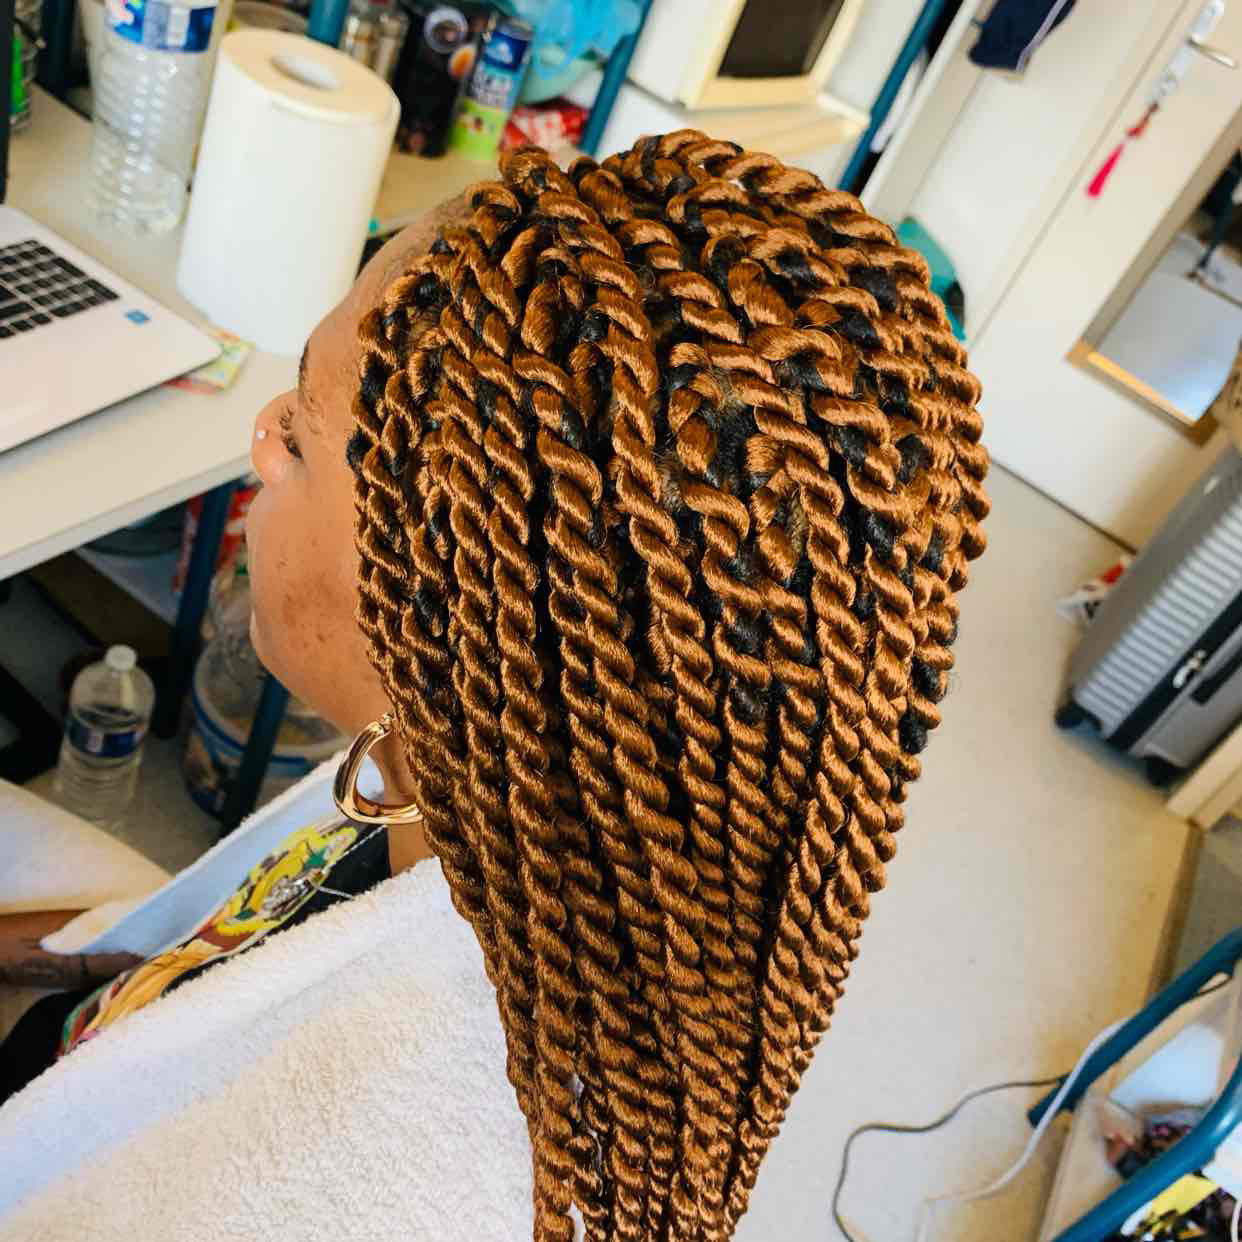 salon de coiffure afro tresse tresses box braids crochet braids vanilles tissages paris 75 77 78 91 92 93 94 95 KQPNQTCP